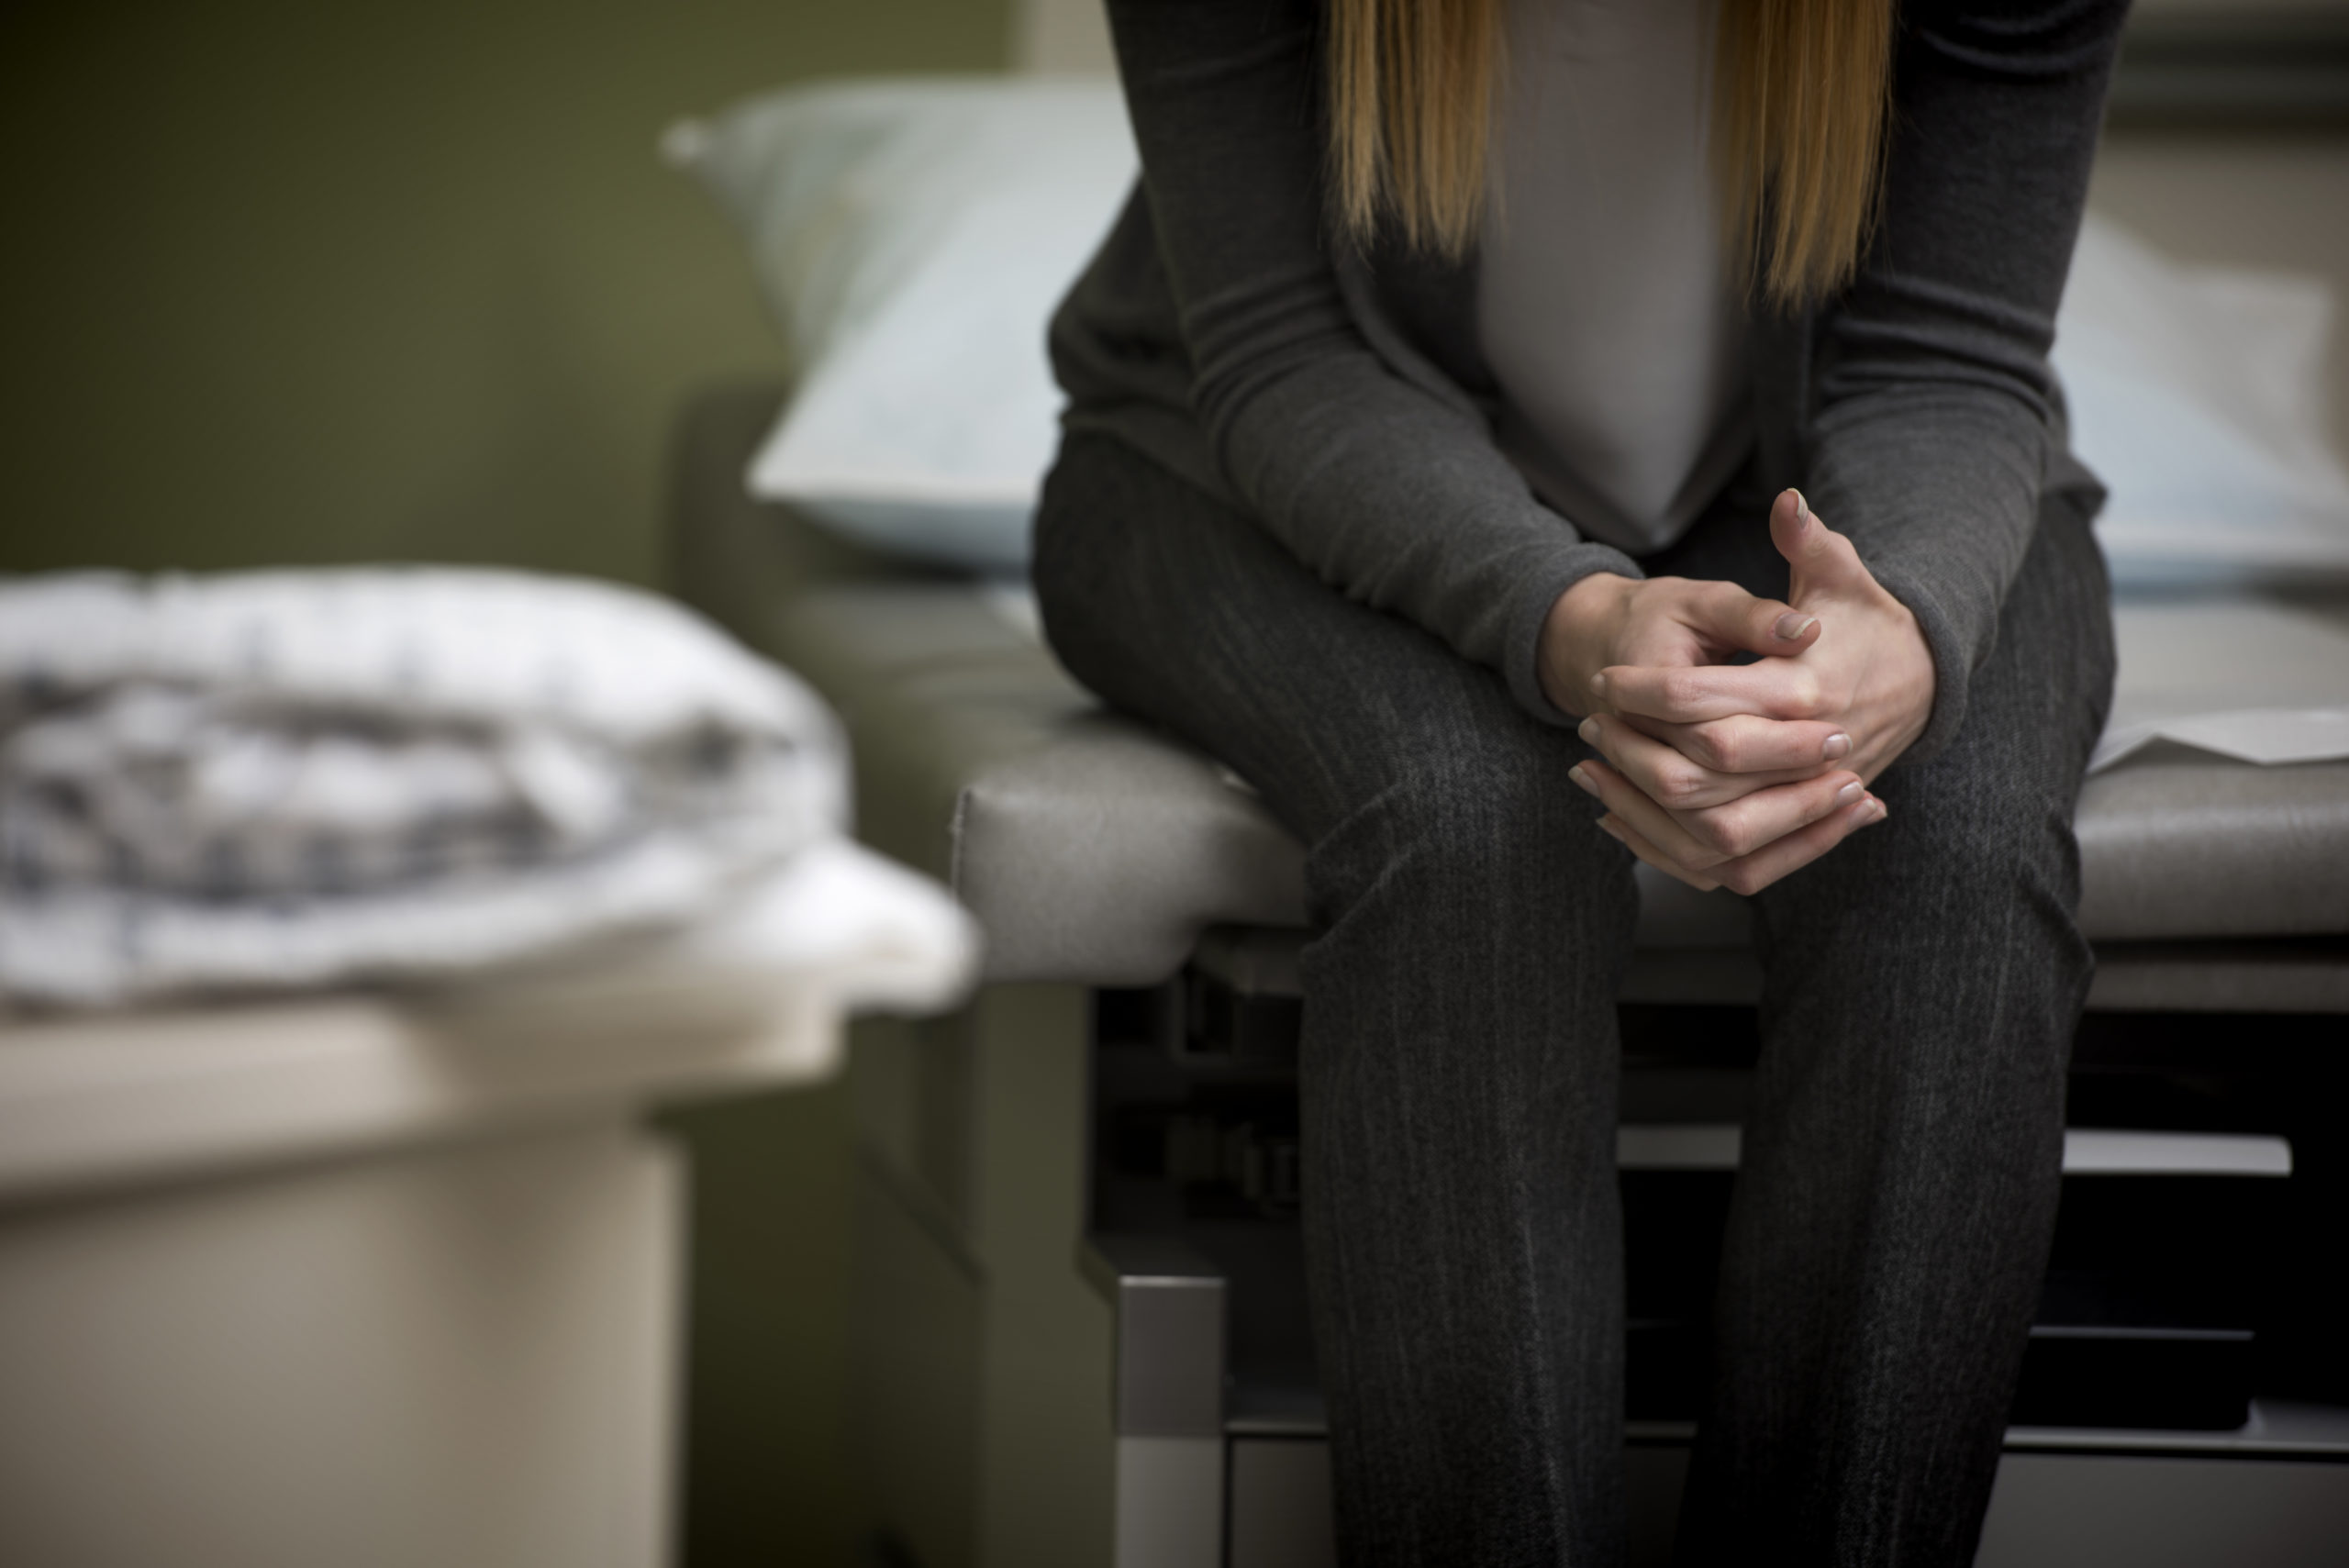 Retrovirus_Autoimmune disease_Women's health_A women is sitting on an exam table with her hangs resting on her legs